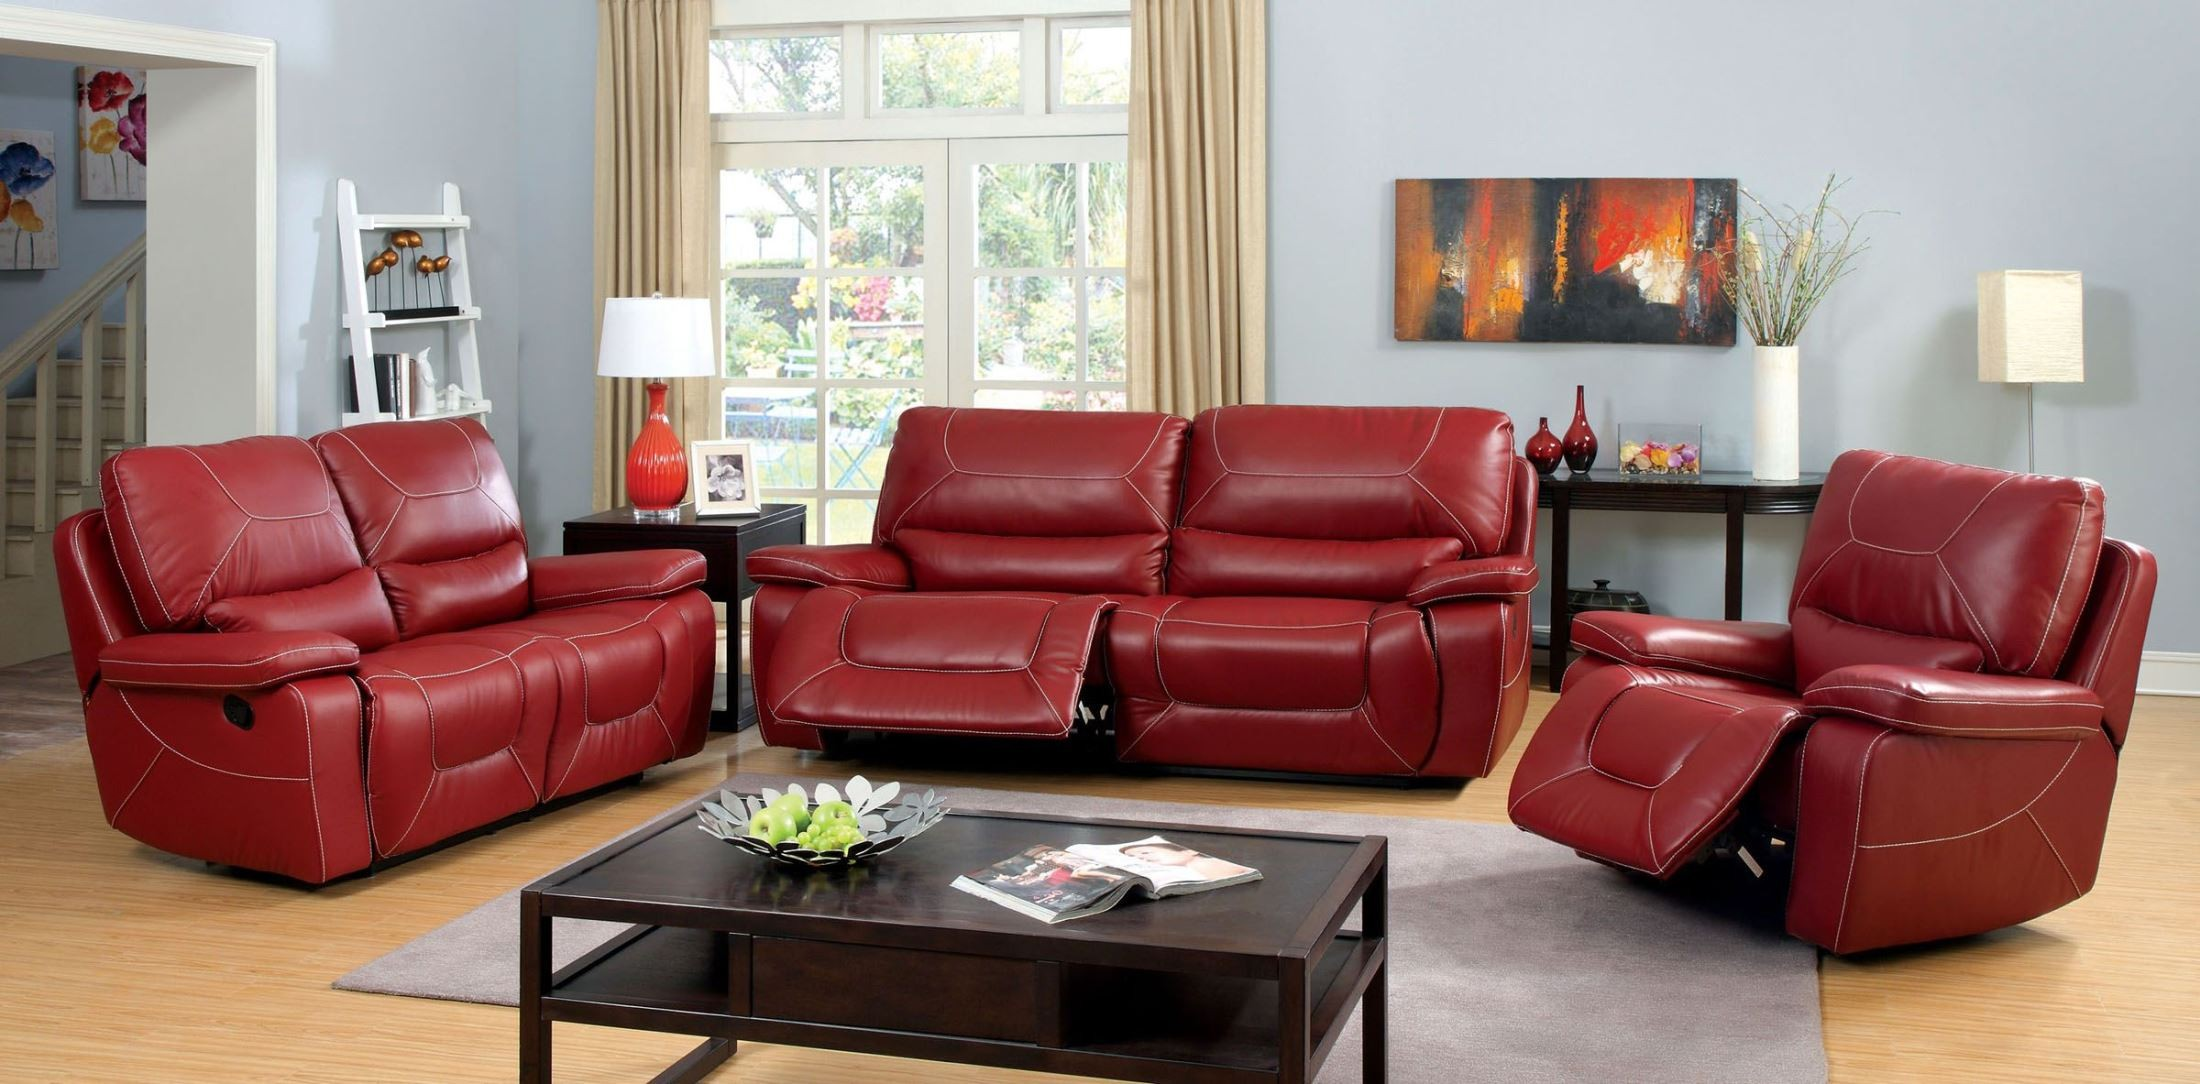 newburg red reclining living room set from furniture of america cm6814rd sf coleman furniture. Black Bedroom Furniture Sets. Home Design Ideas